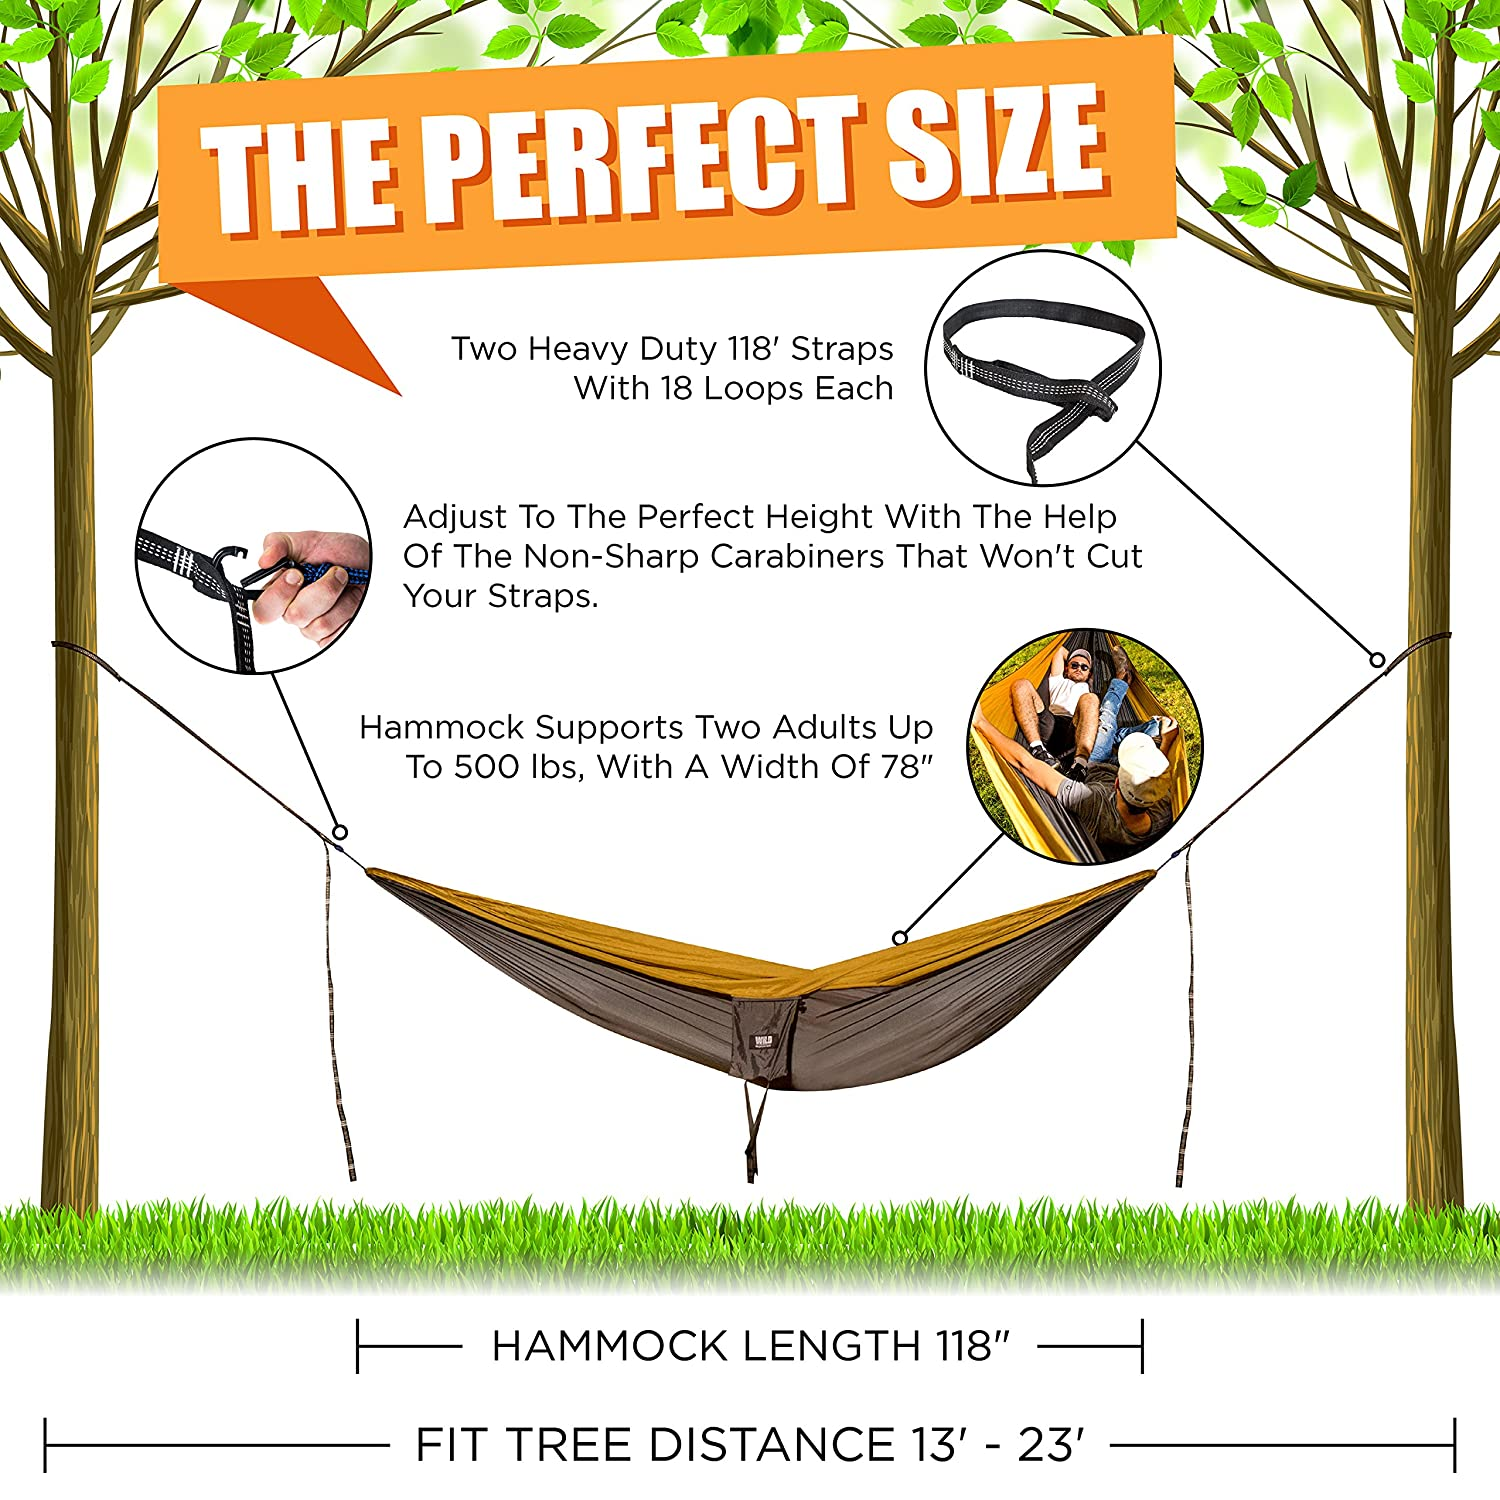 portable loop double compression camping lbs holds aluminum two straps tree hammock for product edges wiregate set purple carabiners ideal best lightweight person that strap travel